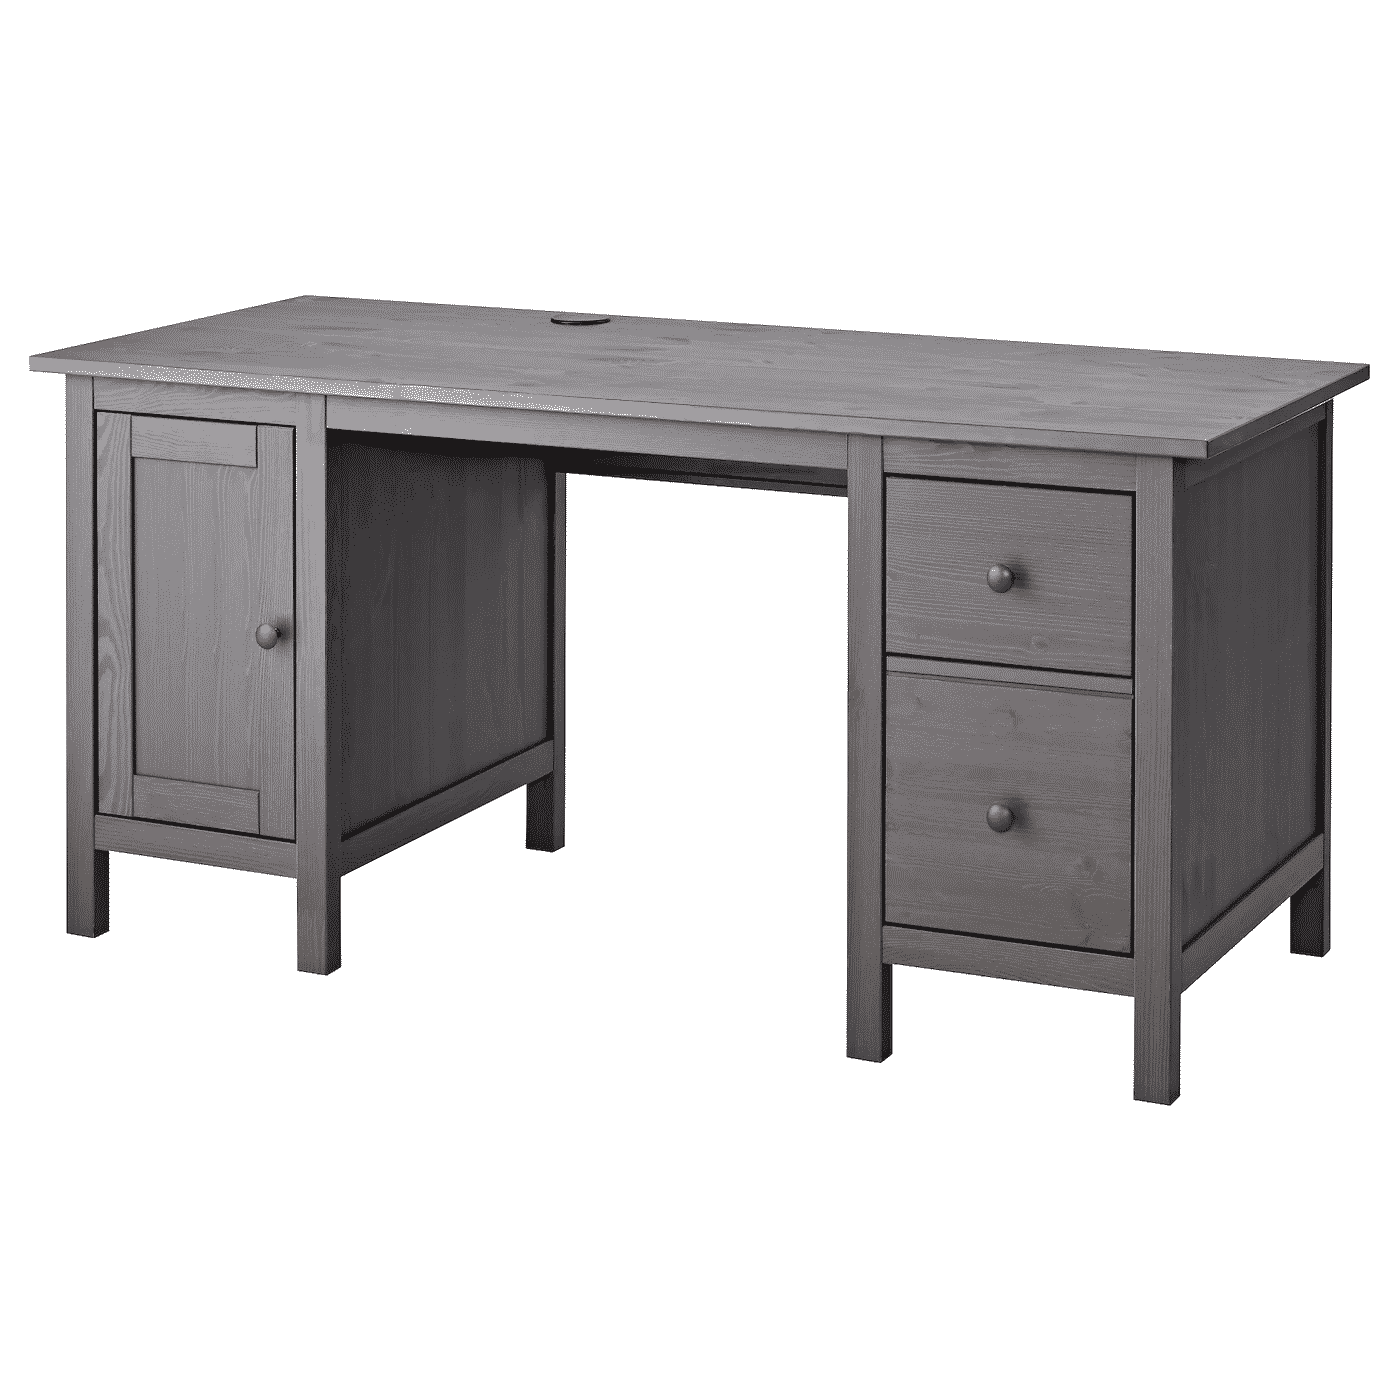 HEMNES Desk, dark gray stained